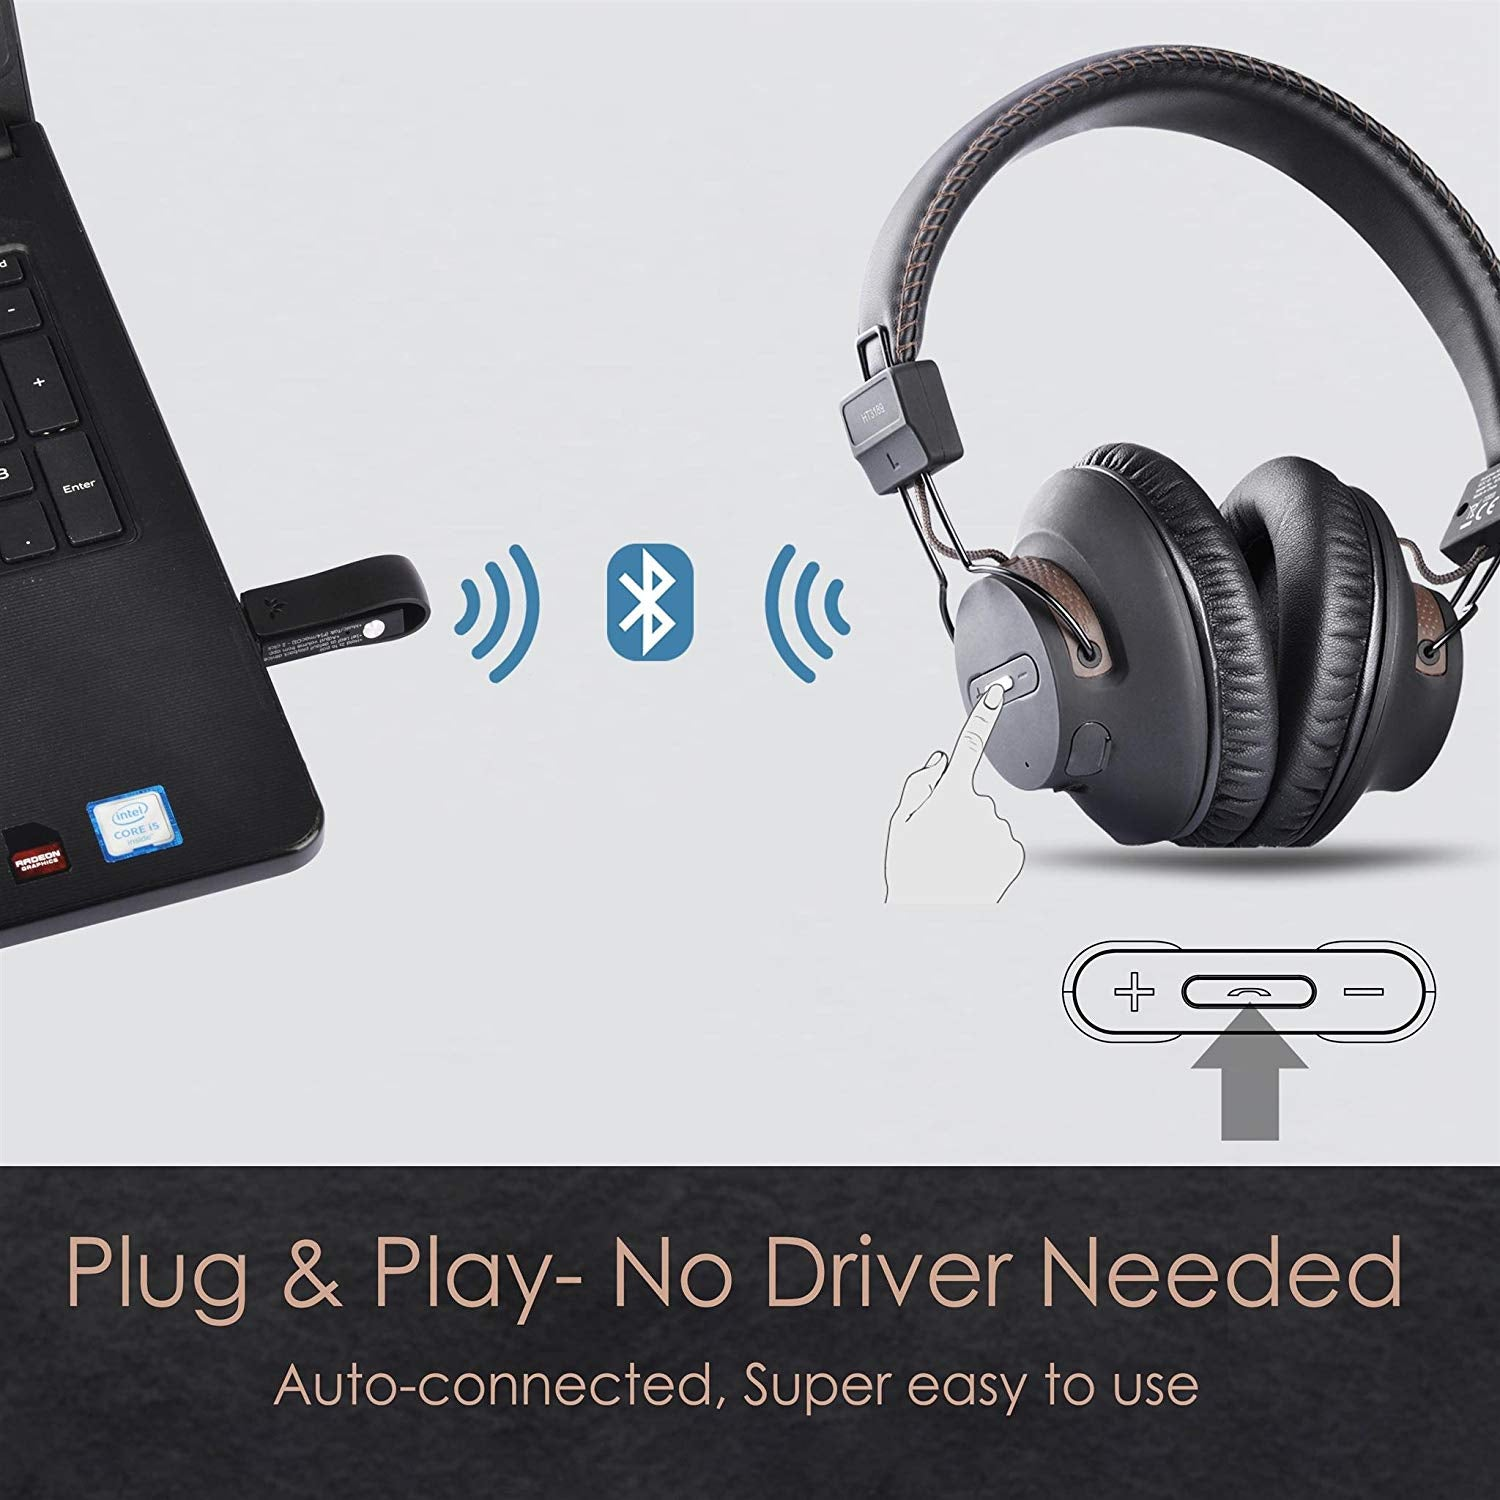 Avantree Dg59 Wireless Ps4 Gaming Headphones With Bluetooth Usb Audio The Gadget Collective